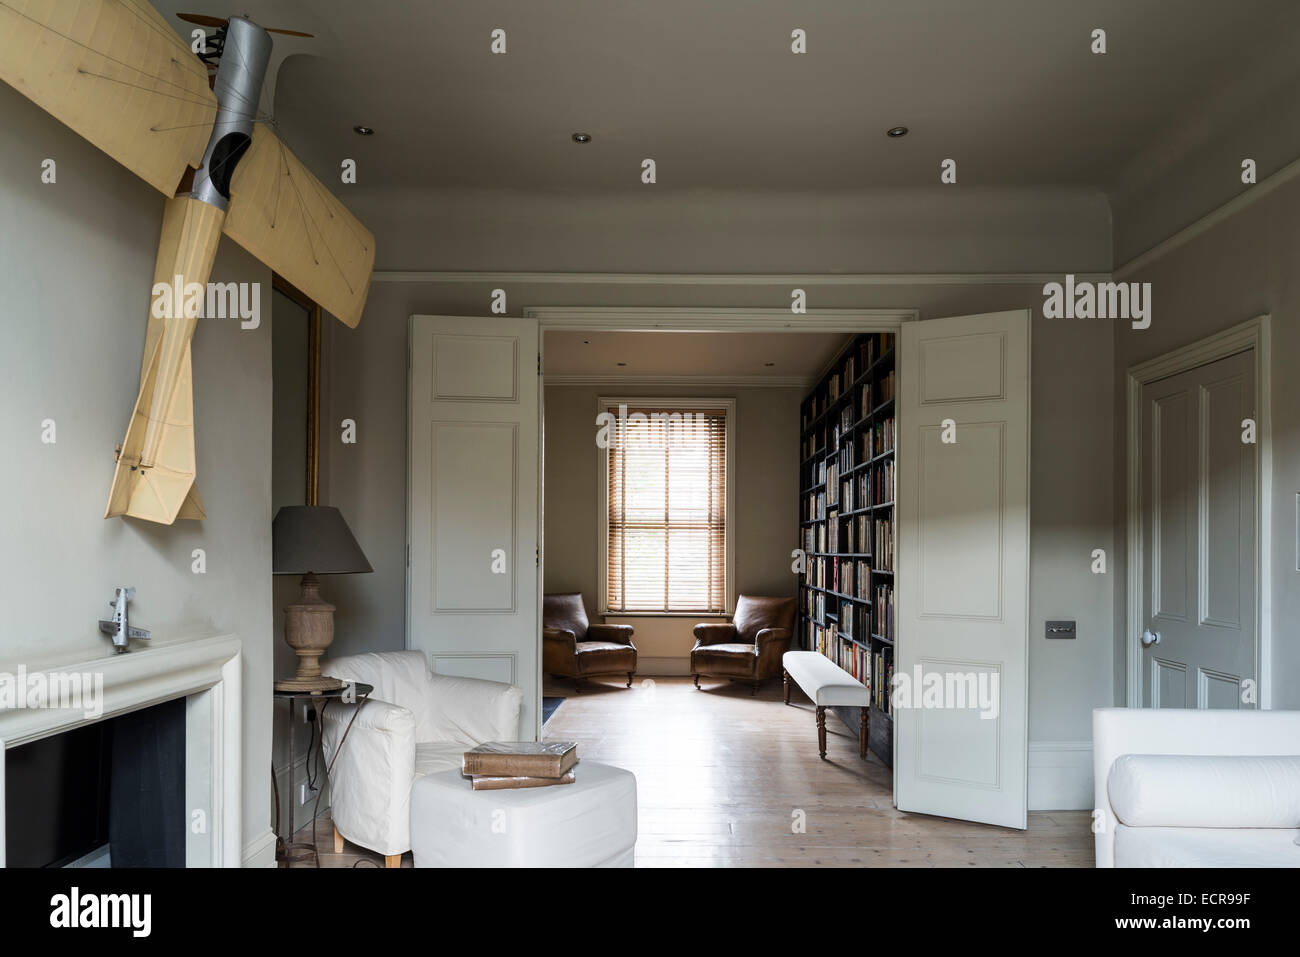 Large scale model airplane hung above fireplace in spacious living room with double doors and white sofa - Stock Image